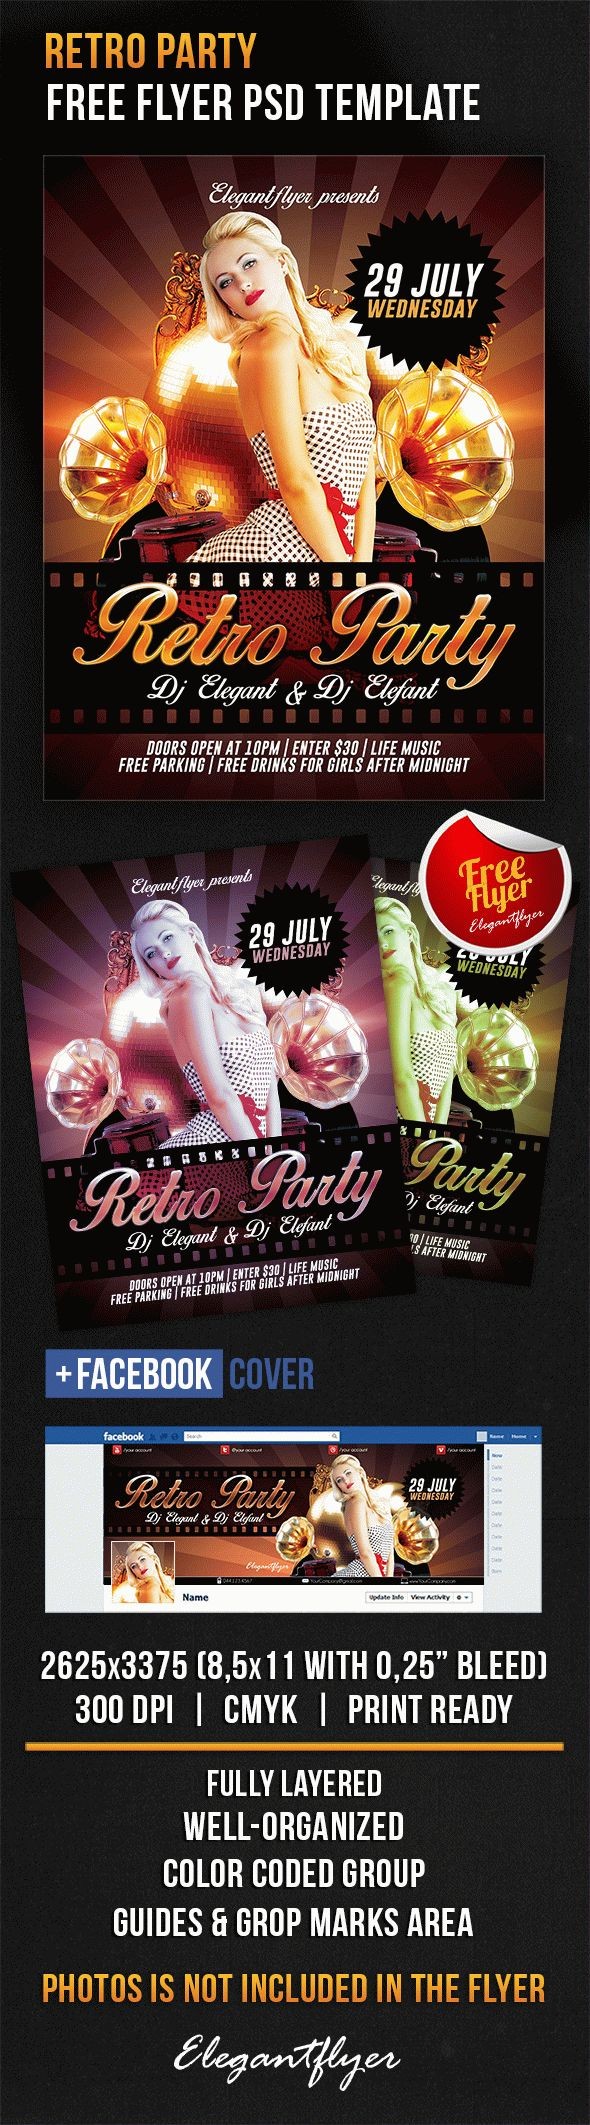 Retro Party – Free Flyer PSD Template + Facebook Cover